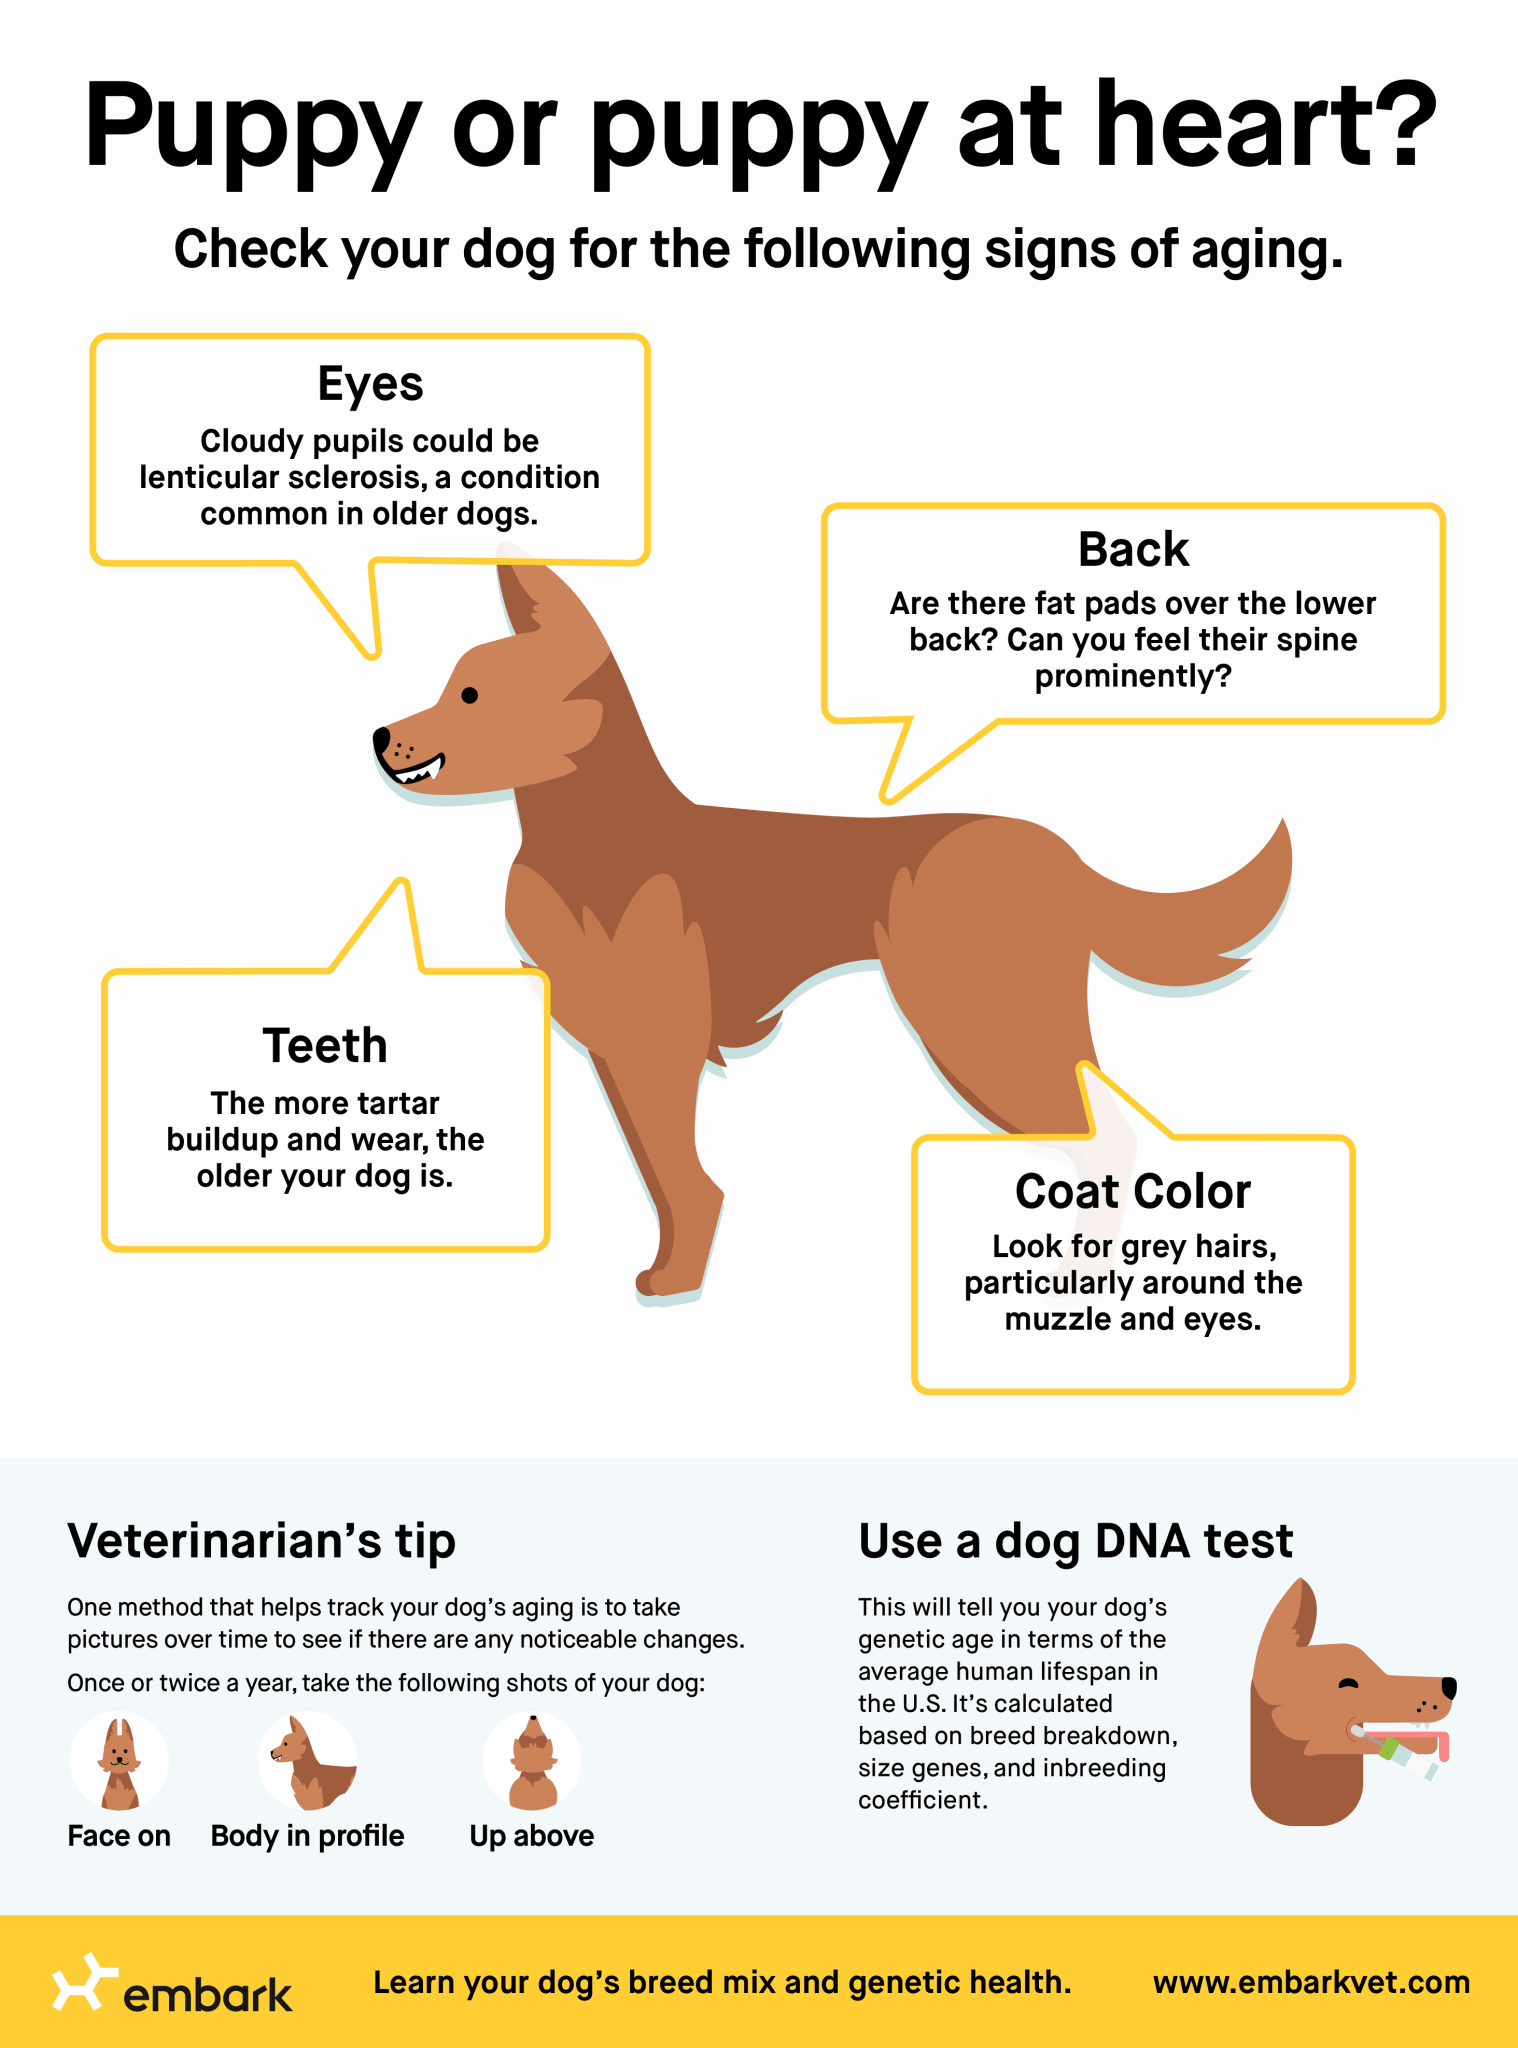 Tips for guessing your dog's age